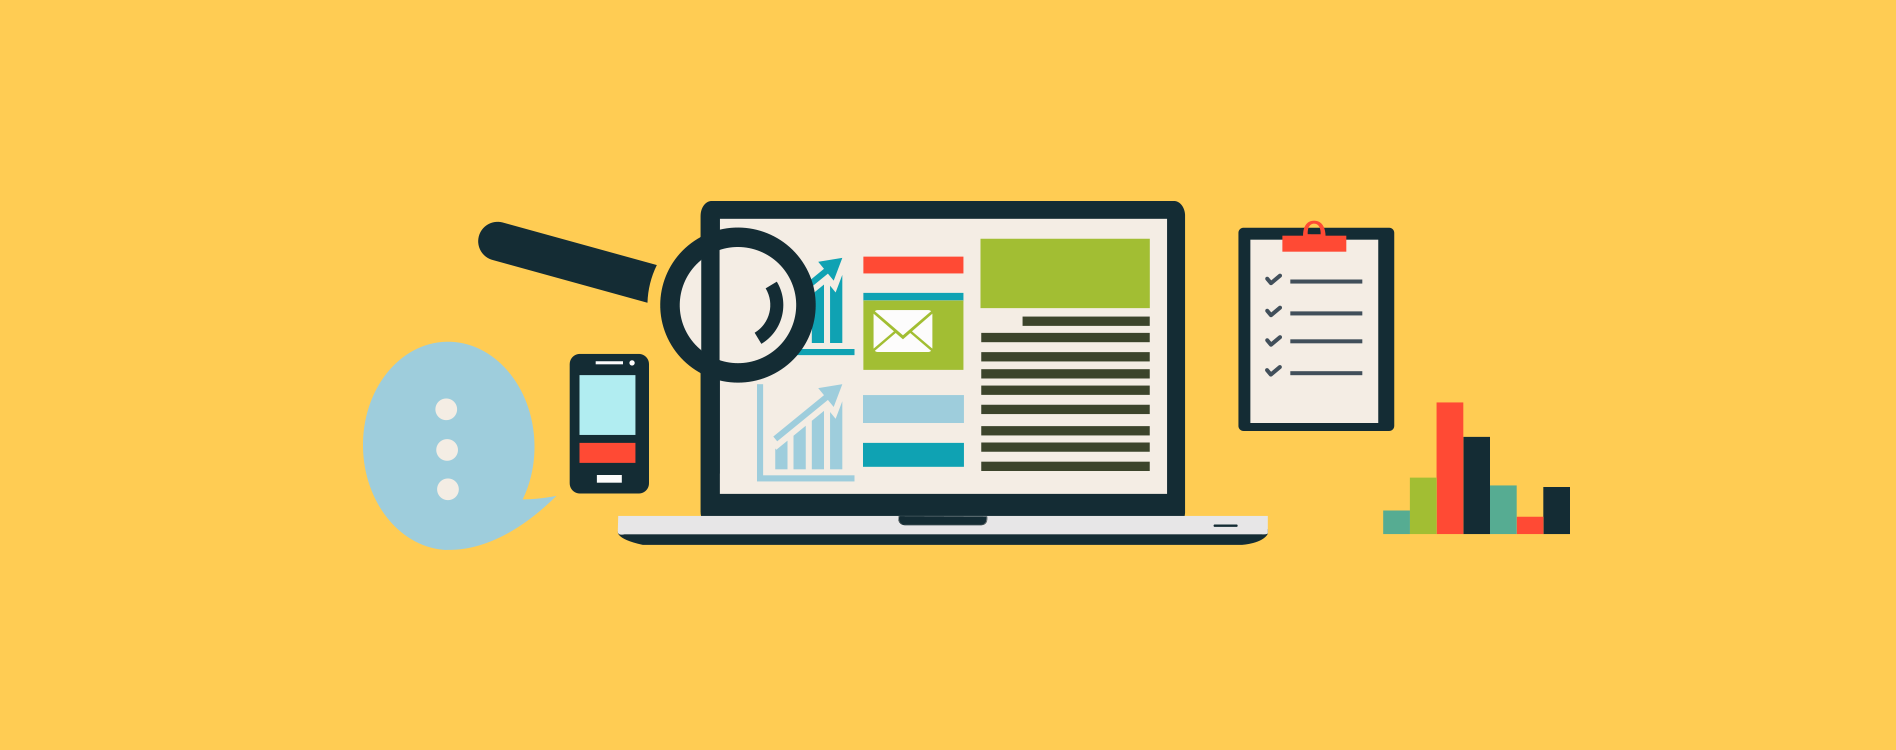 Creating links optimized for UX and SEO